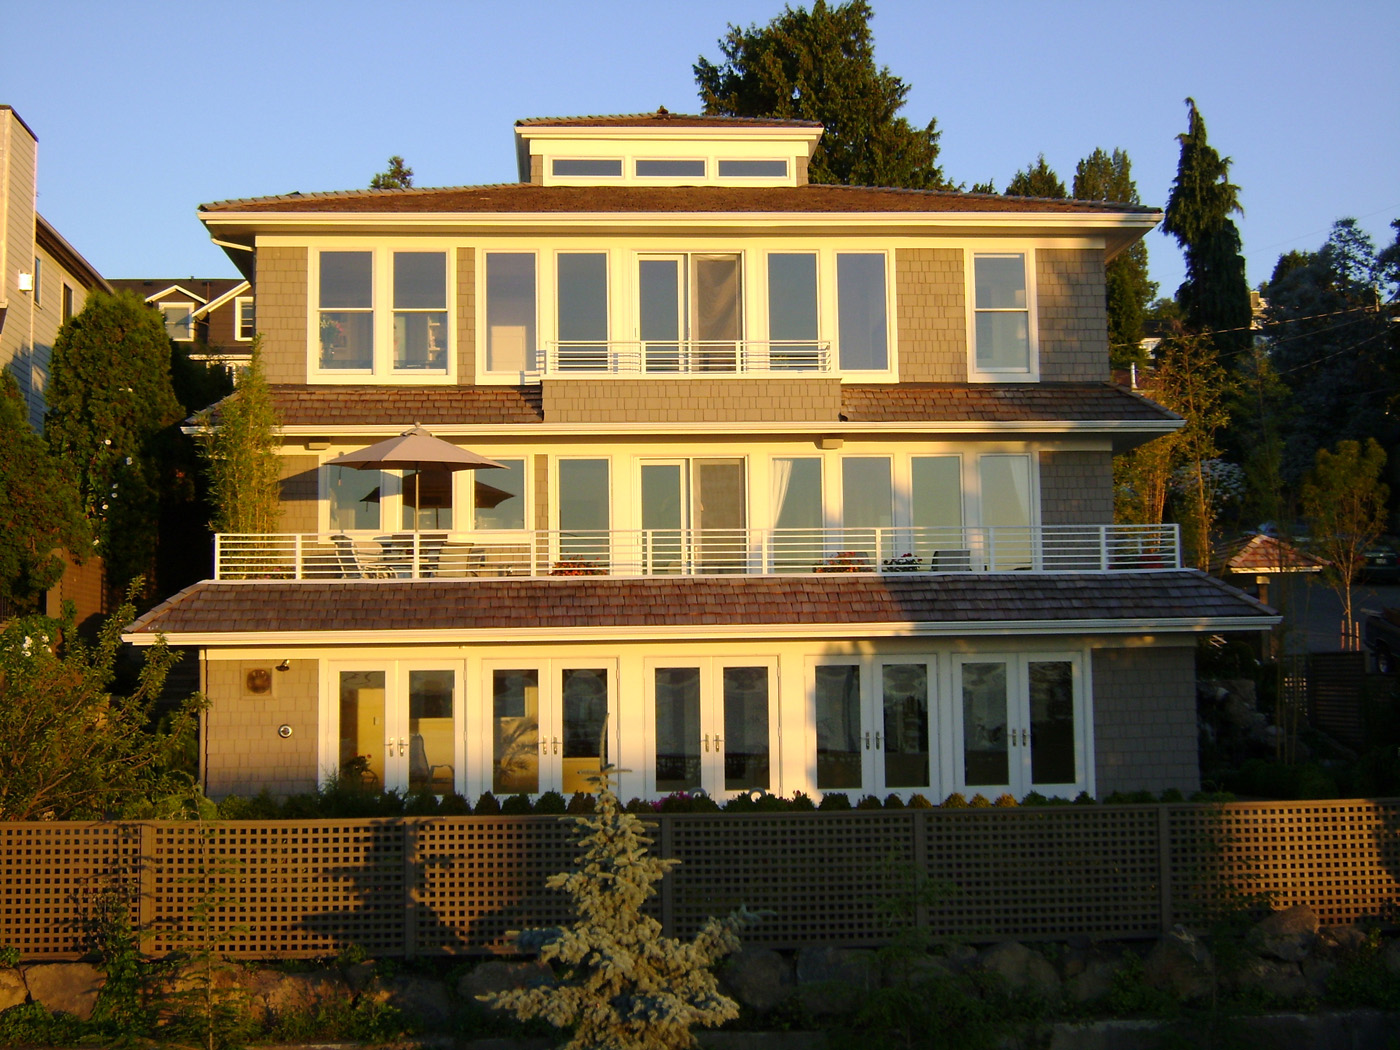 Seattle local business news and data environment for 3 story house